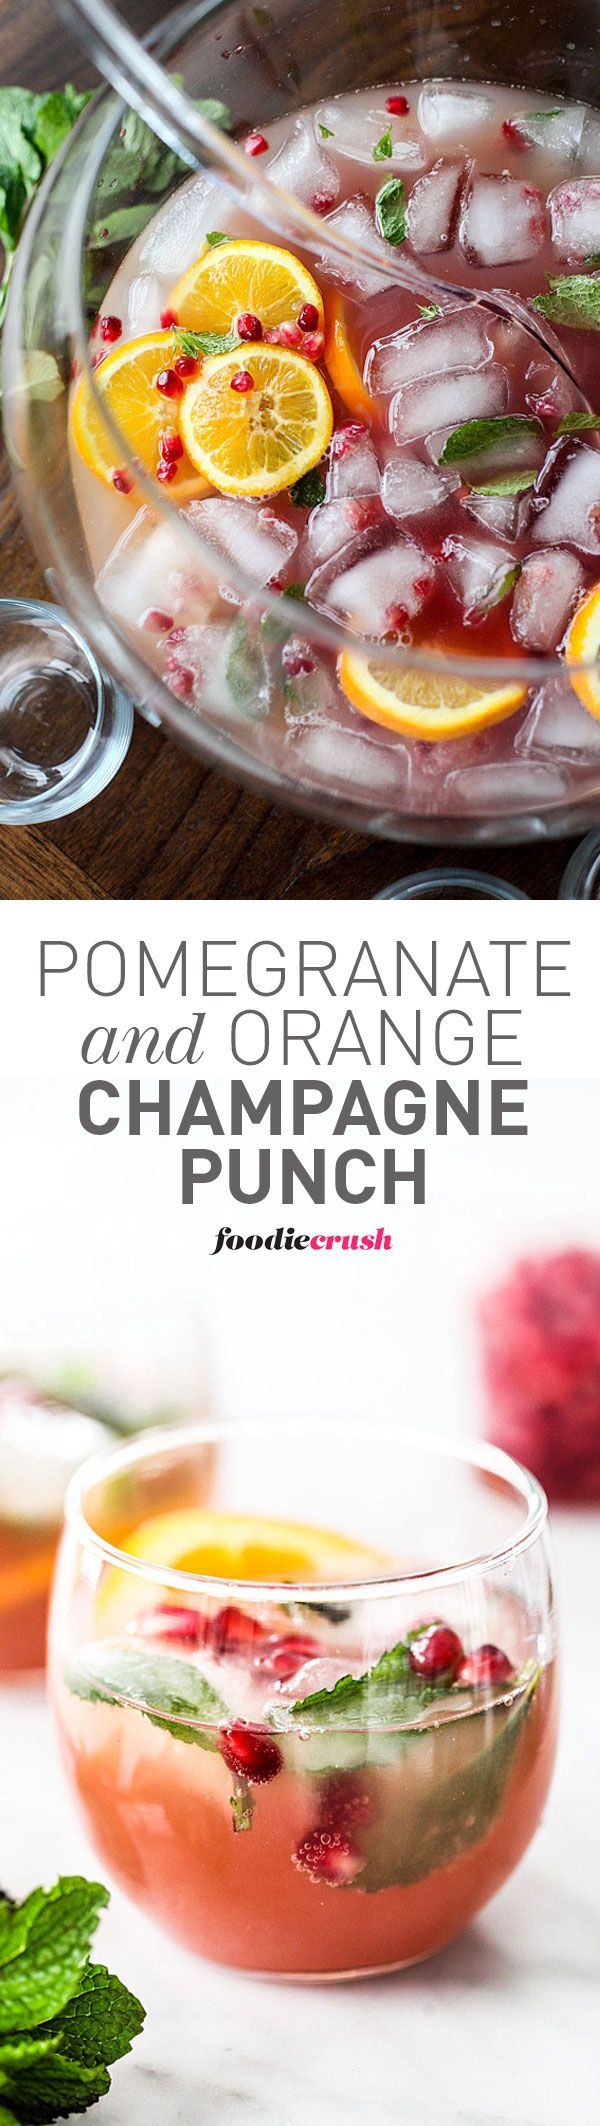 Prosecco or champagne make this easy punch recipe for a crowd extra bubbly | foodiecrush.com